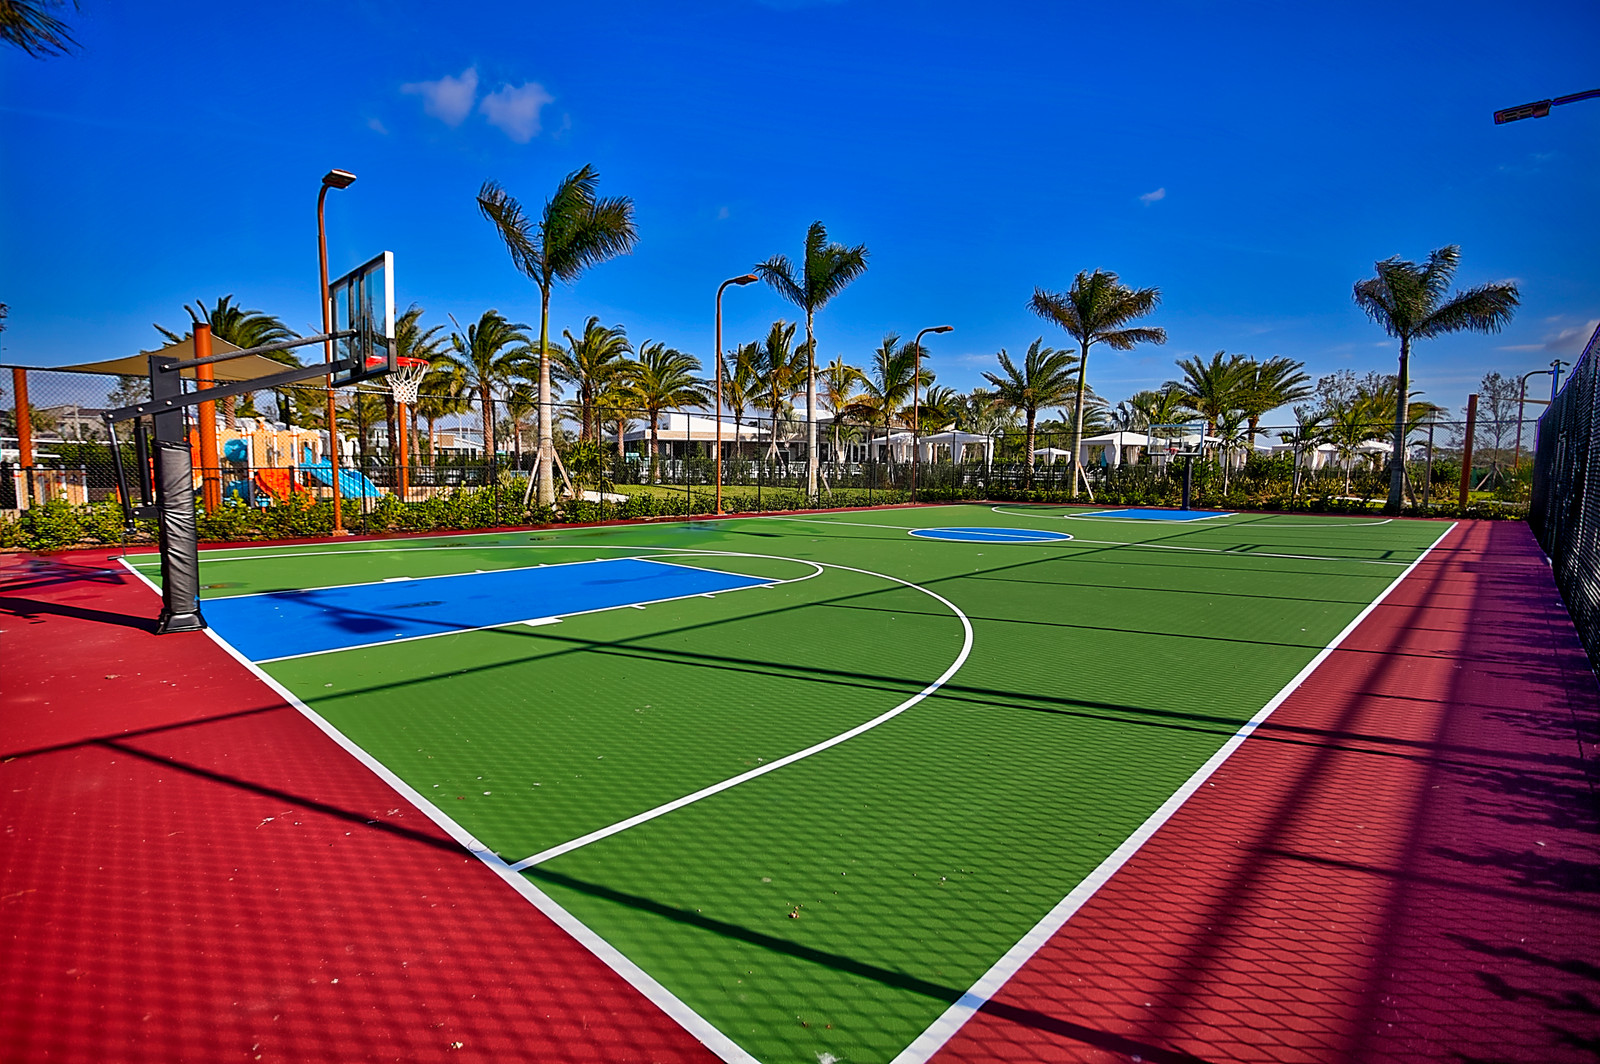 Alton has a modern basketball court with adjustable height ...